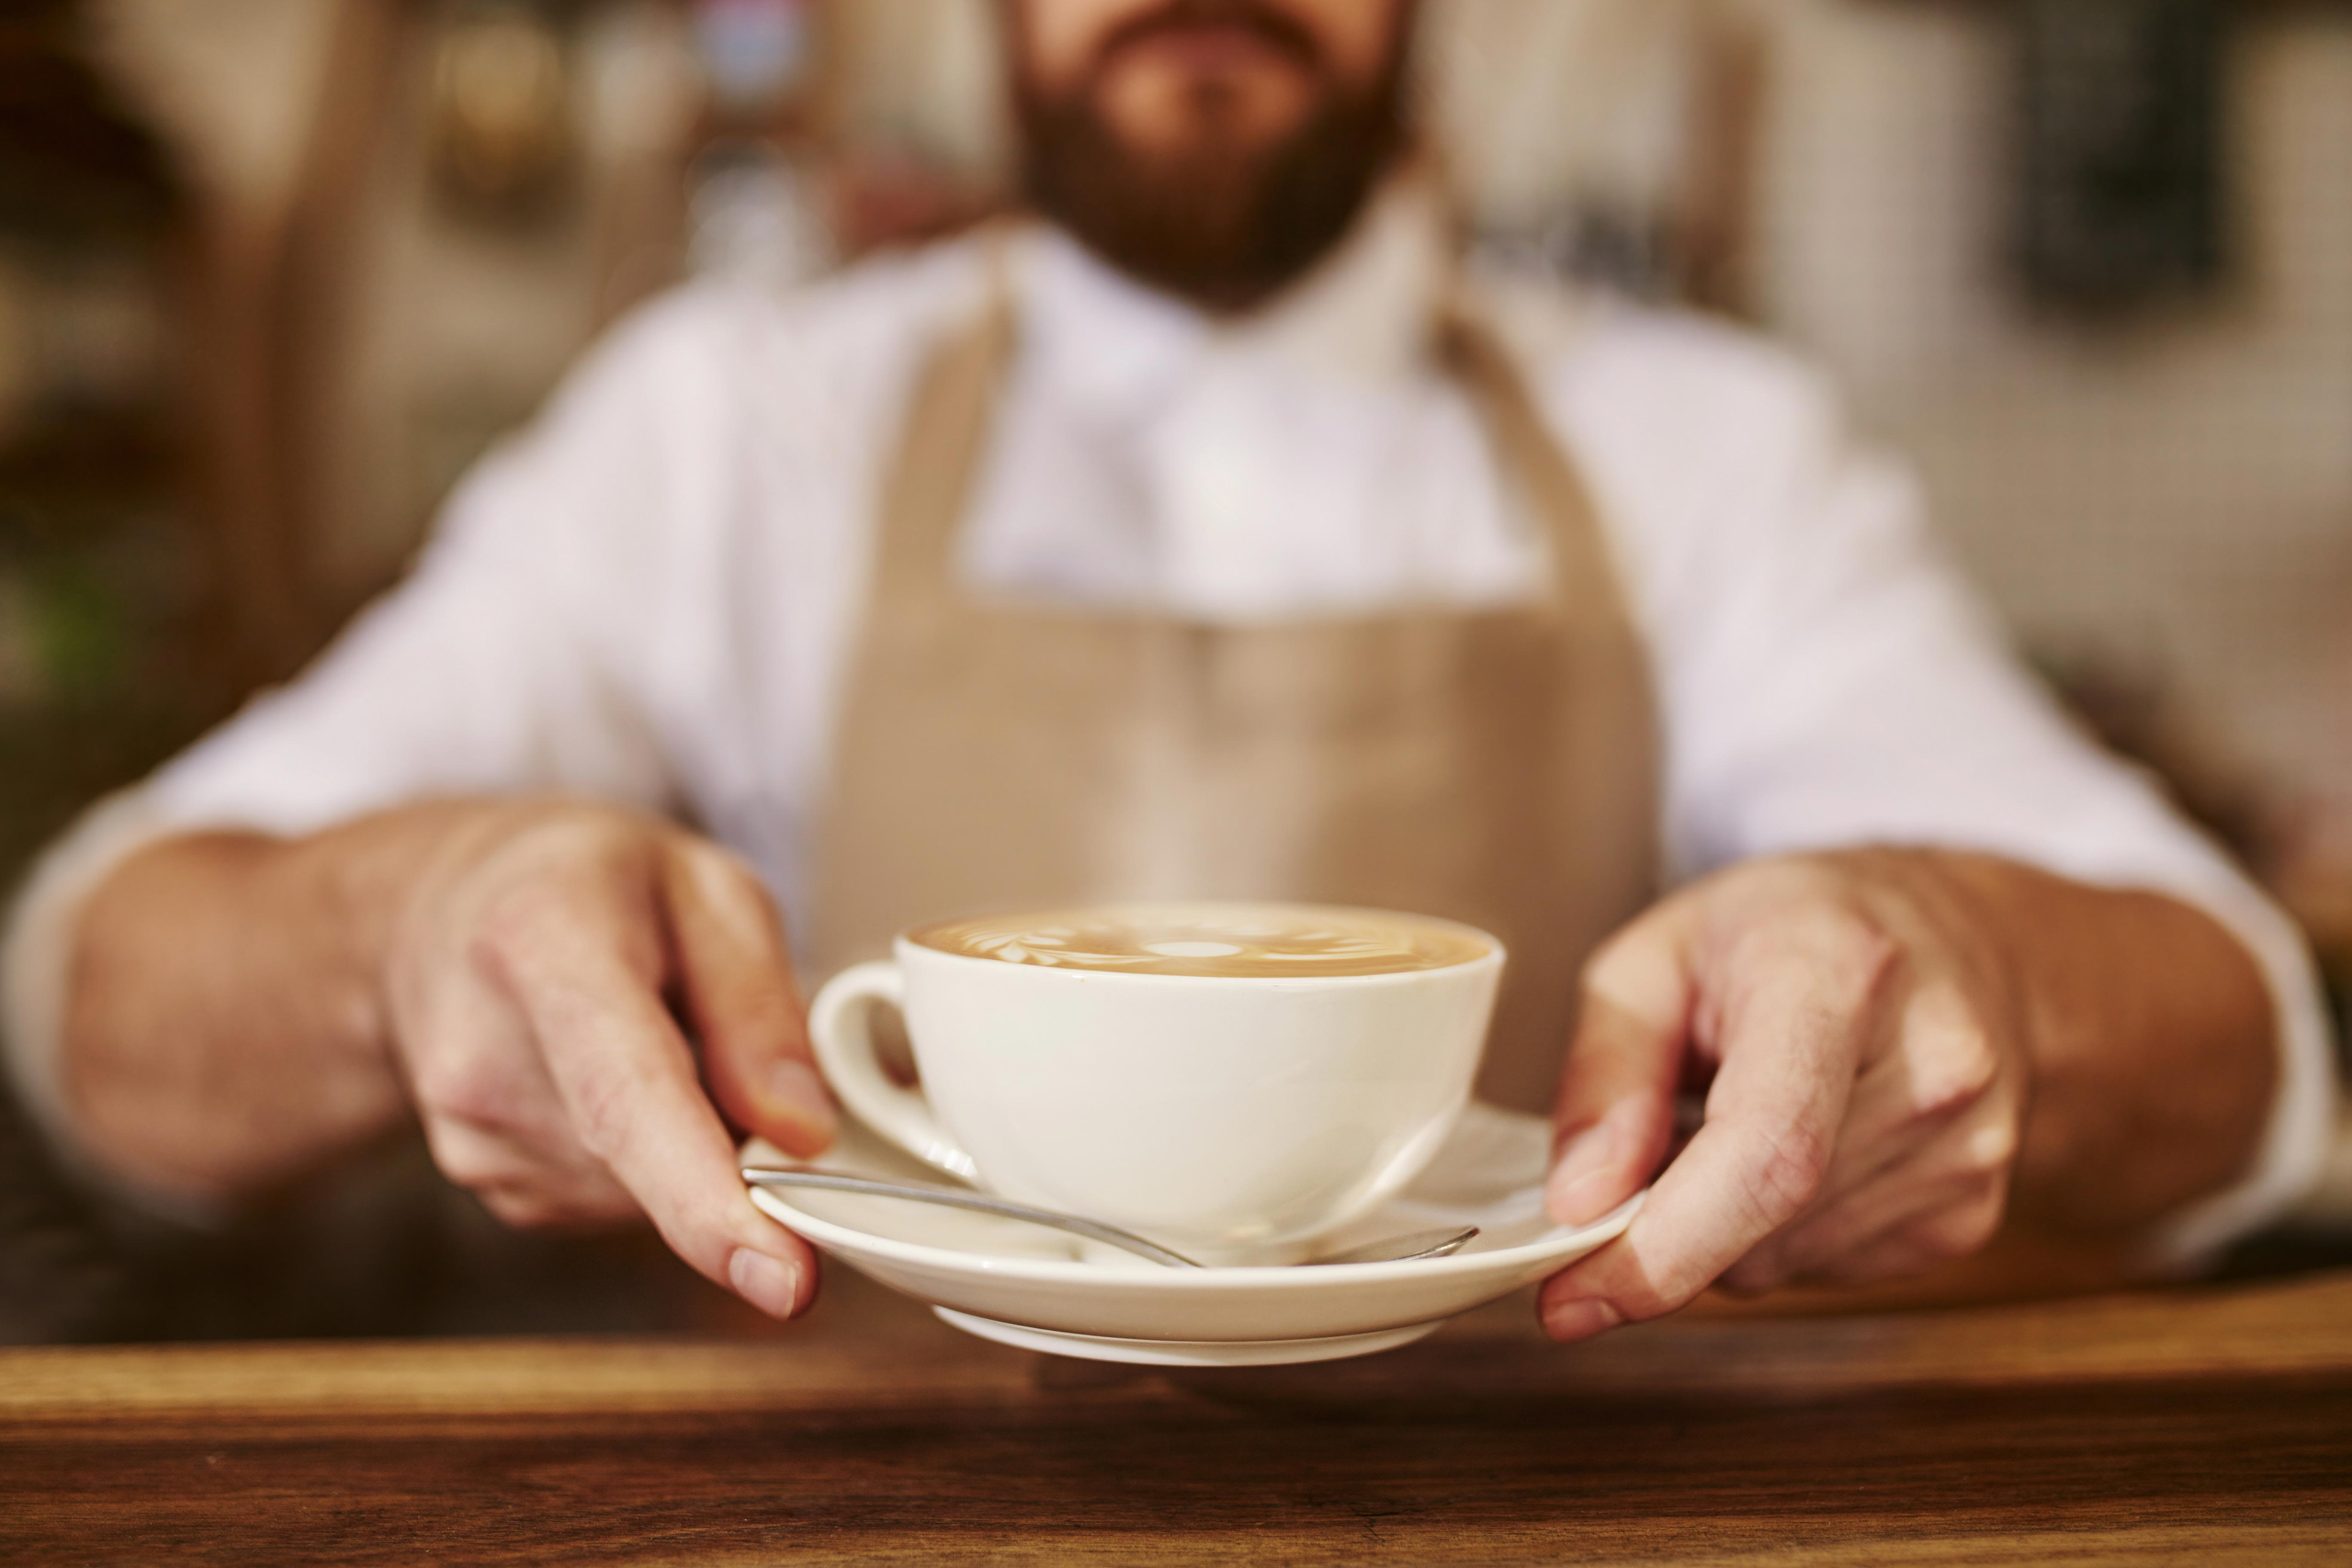 Food Services - Office Coffee, Vending, Hospitality and In-Room, Restaurants, Convenience and Gas, Healthcare, On Demand, Coffeehouses, and Cafes